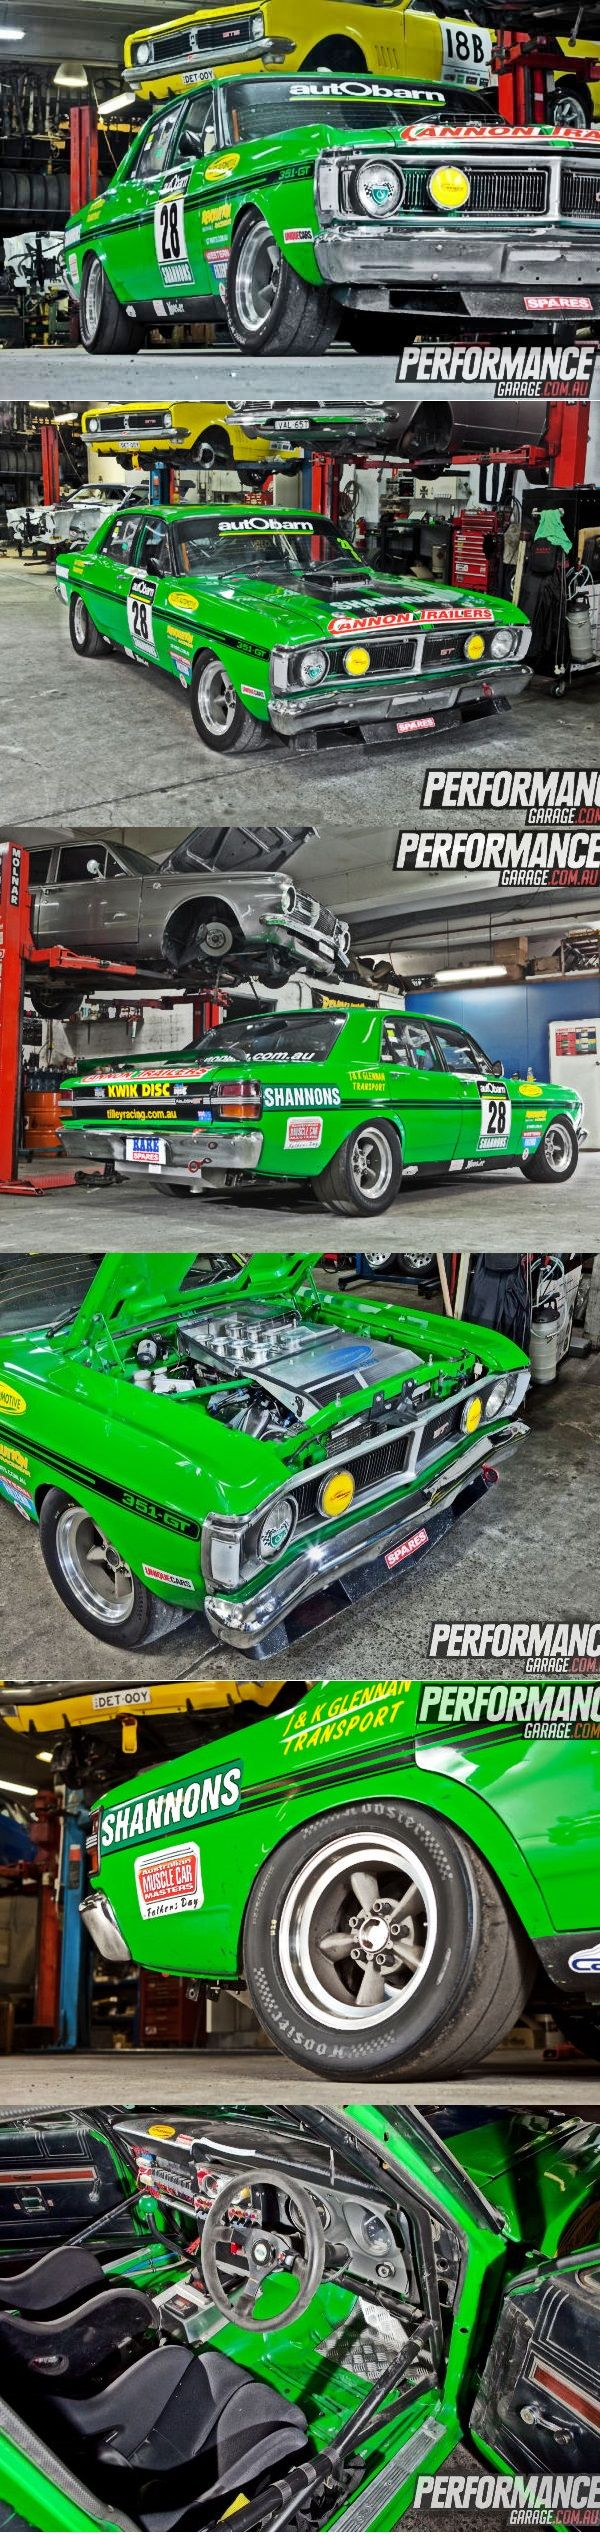 1961 ford falcon for sale racingjunk classifieds - Ford Falcon Xy Gt Cameron Tilley 28 1971